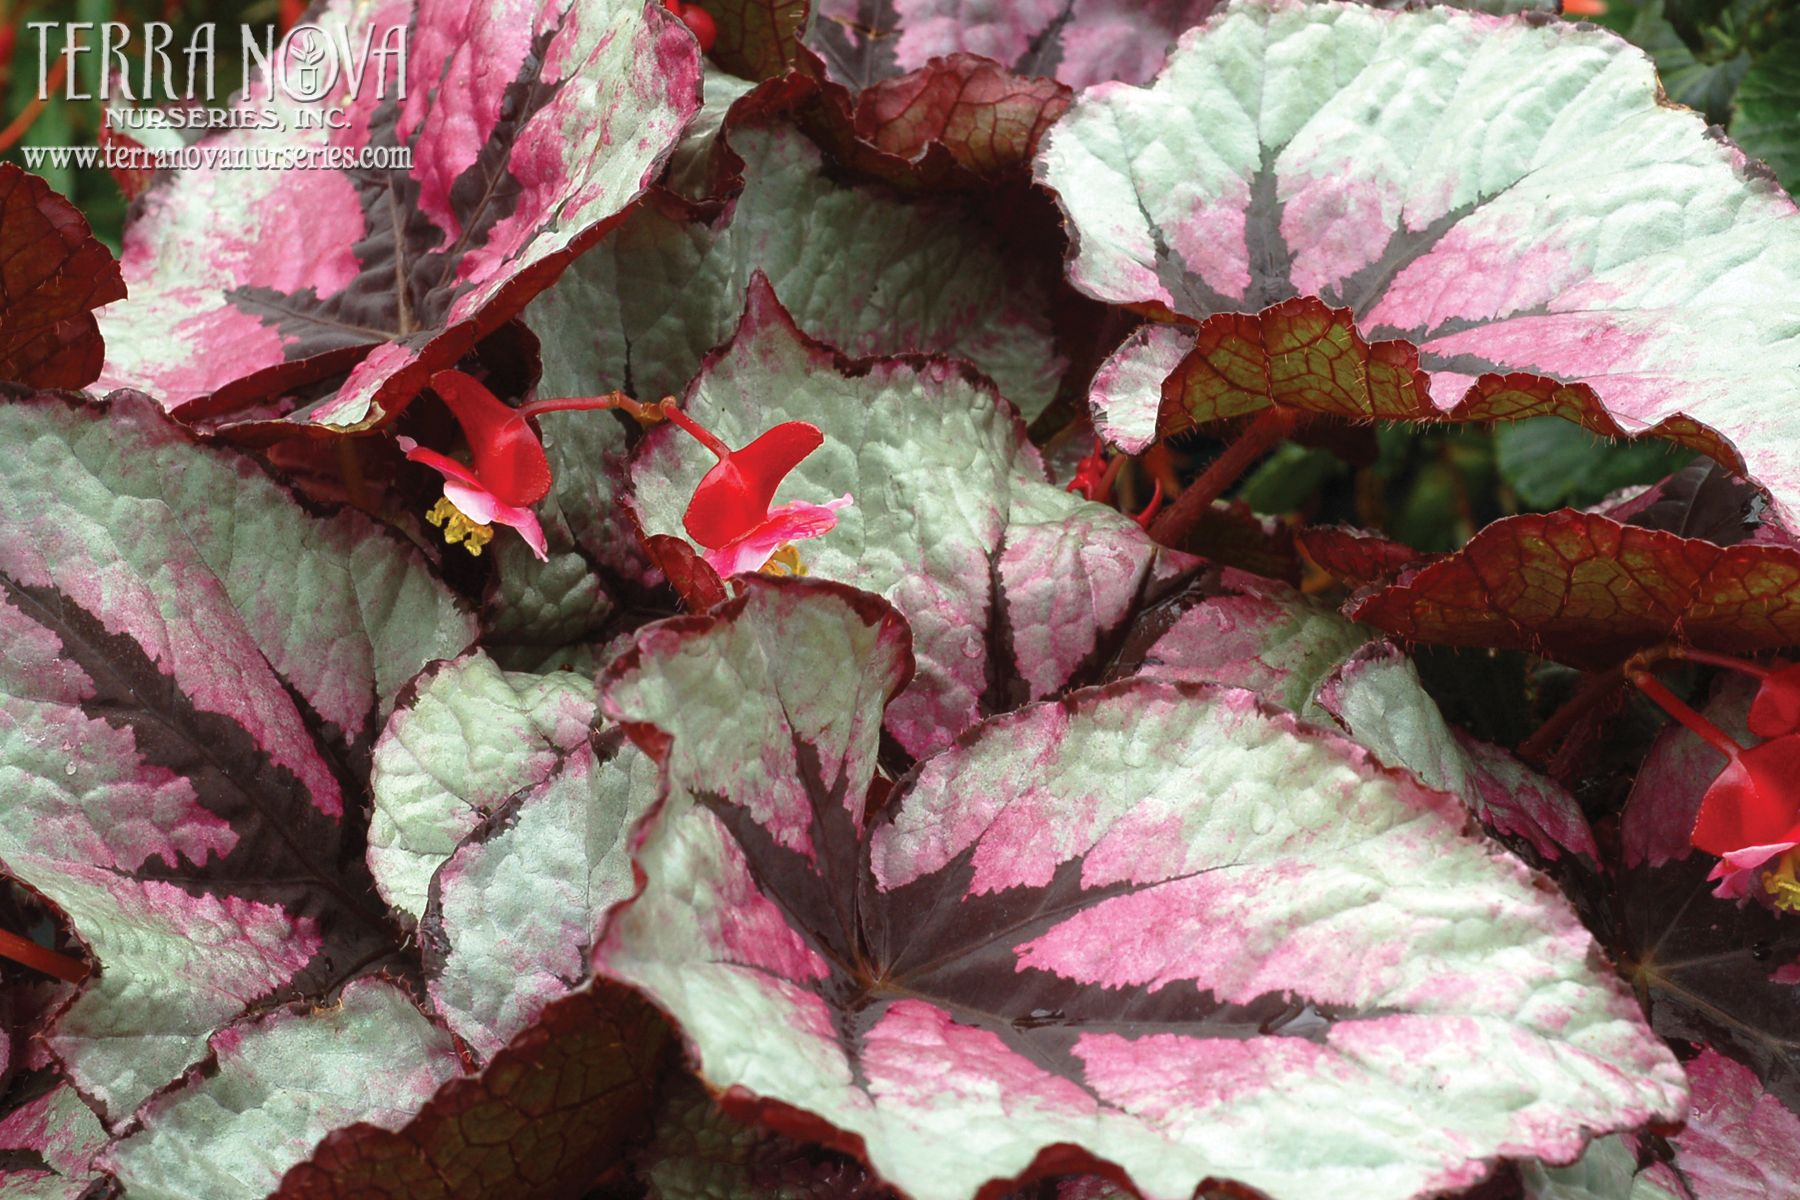 Begonia T Rex First Blush Silvery Lavender Leaves Are Lightly Kissed With Raspberry That Gets More Pronounced Plant Breeding Begonia Online Plant Nursery